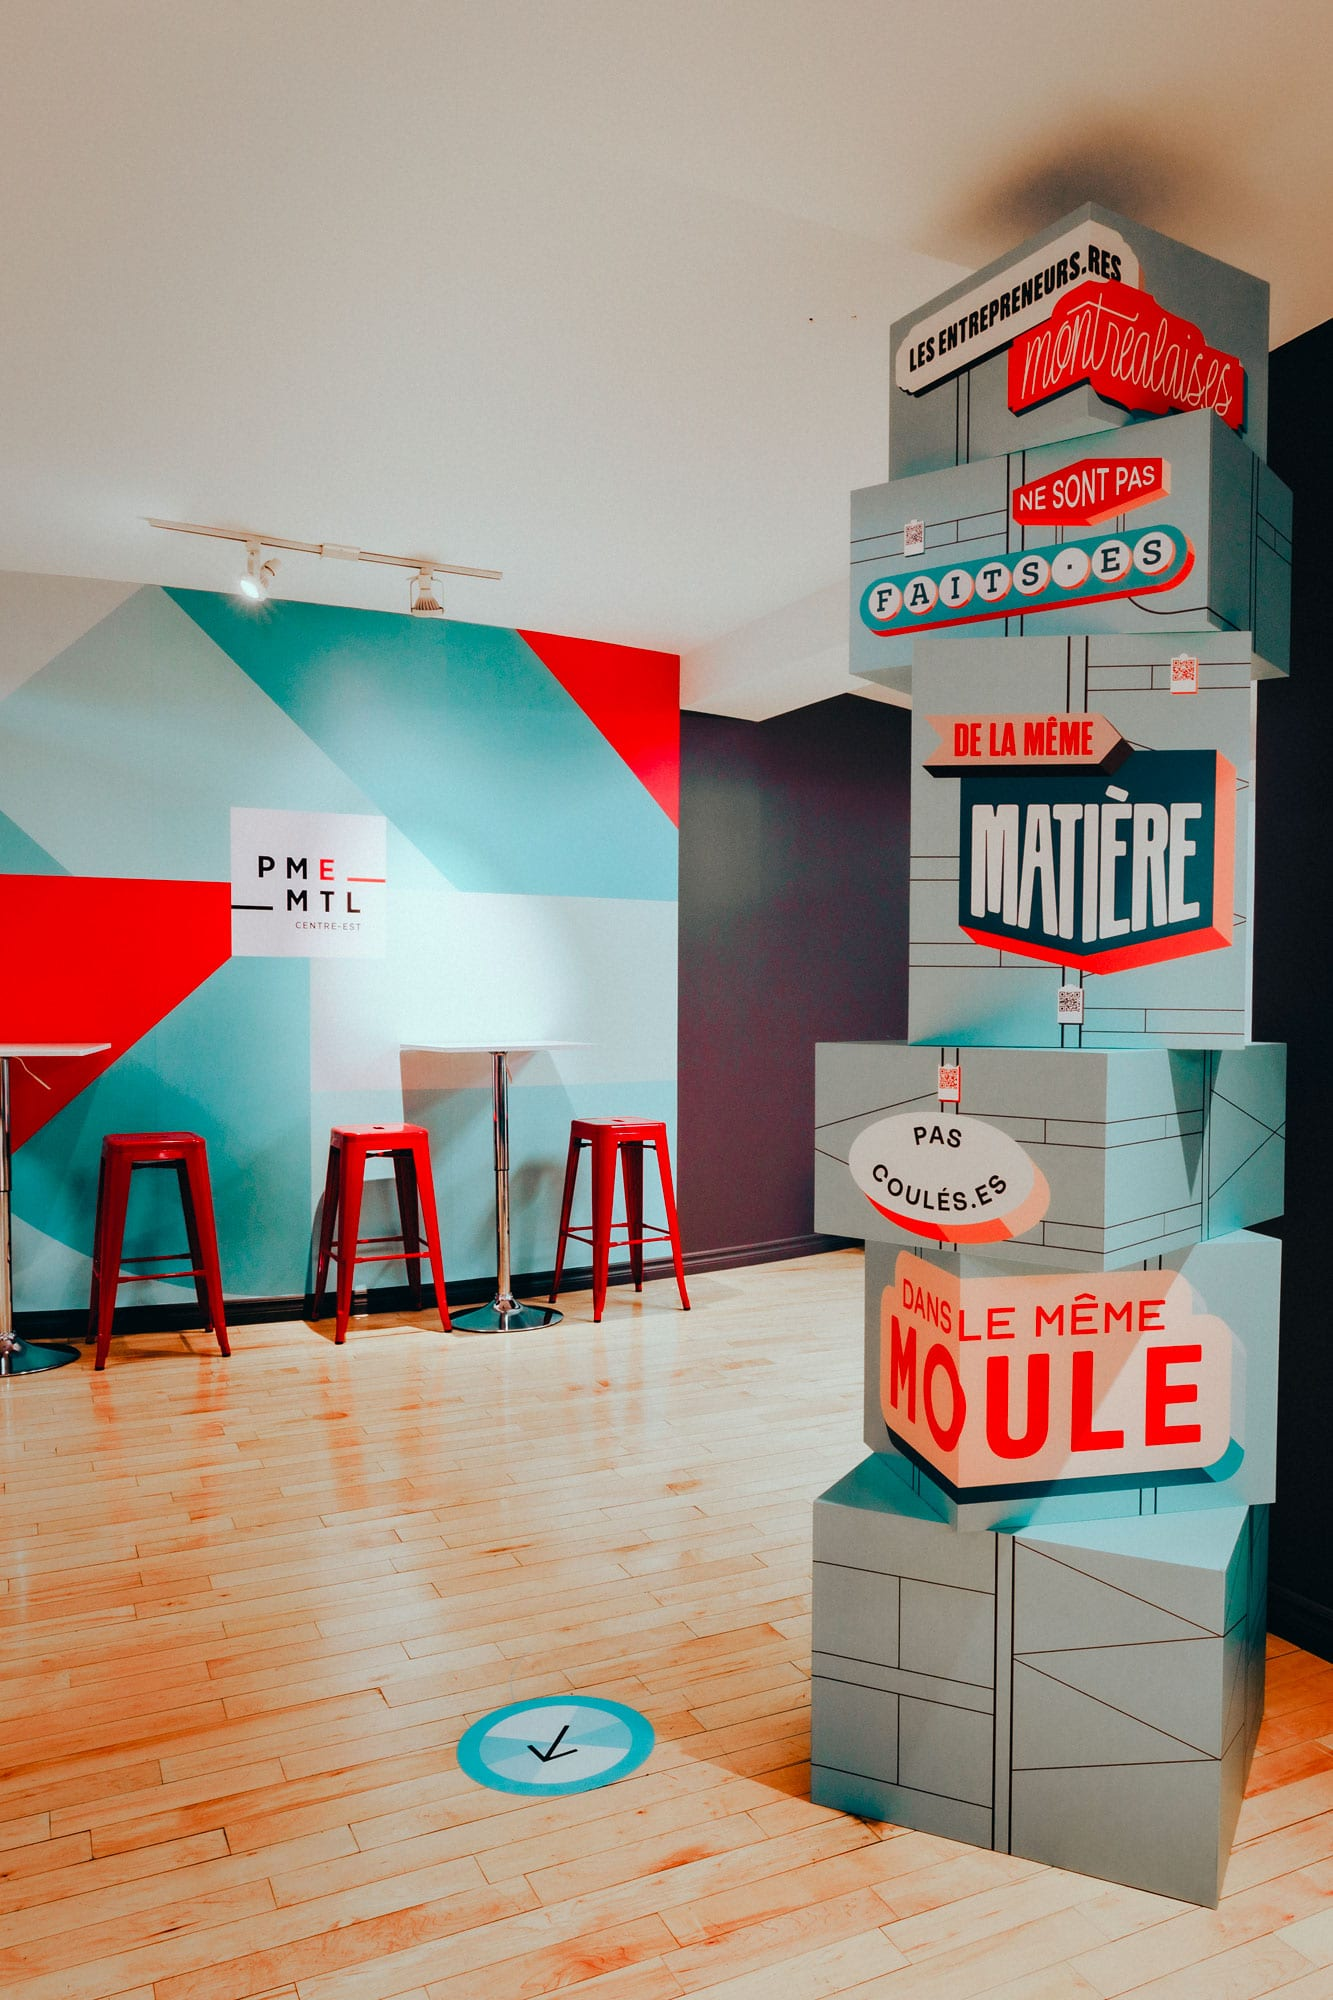 Office Space Design - PME MTL - Interactive Mural by MASSIVart and Paprika